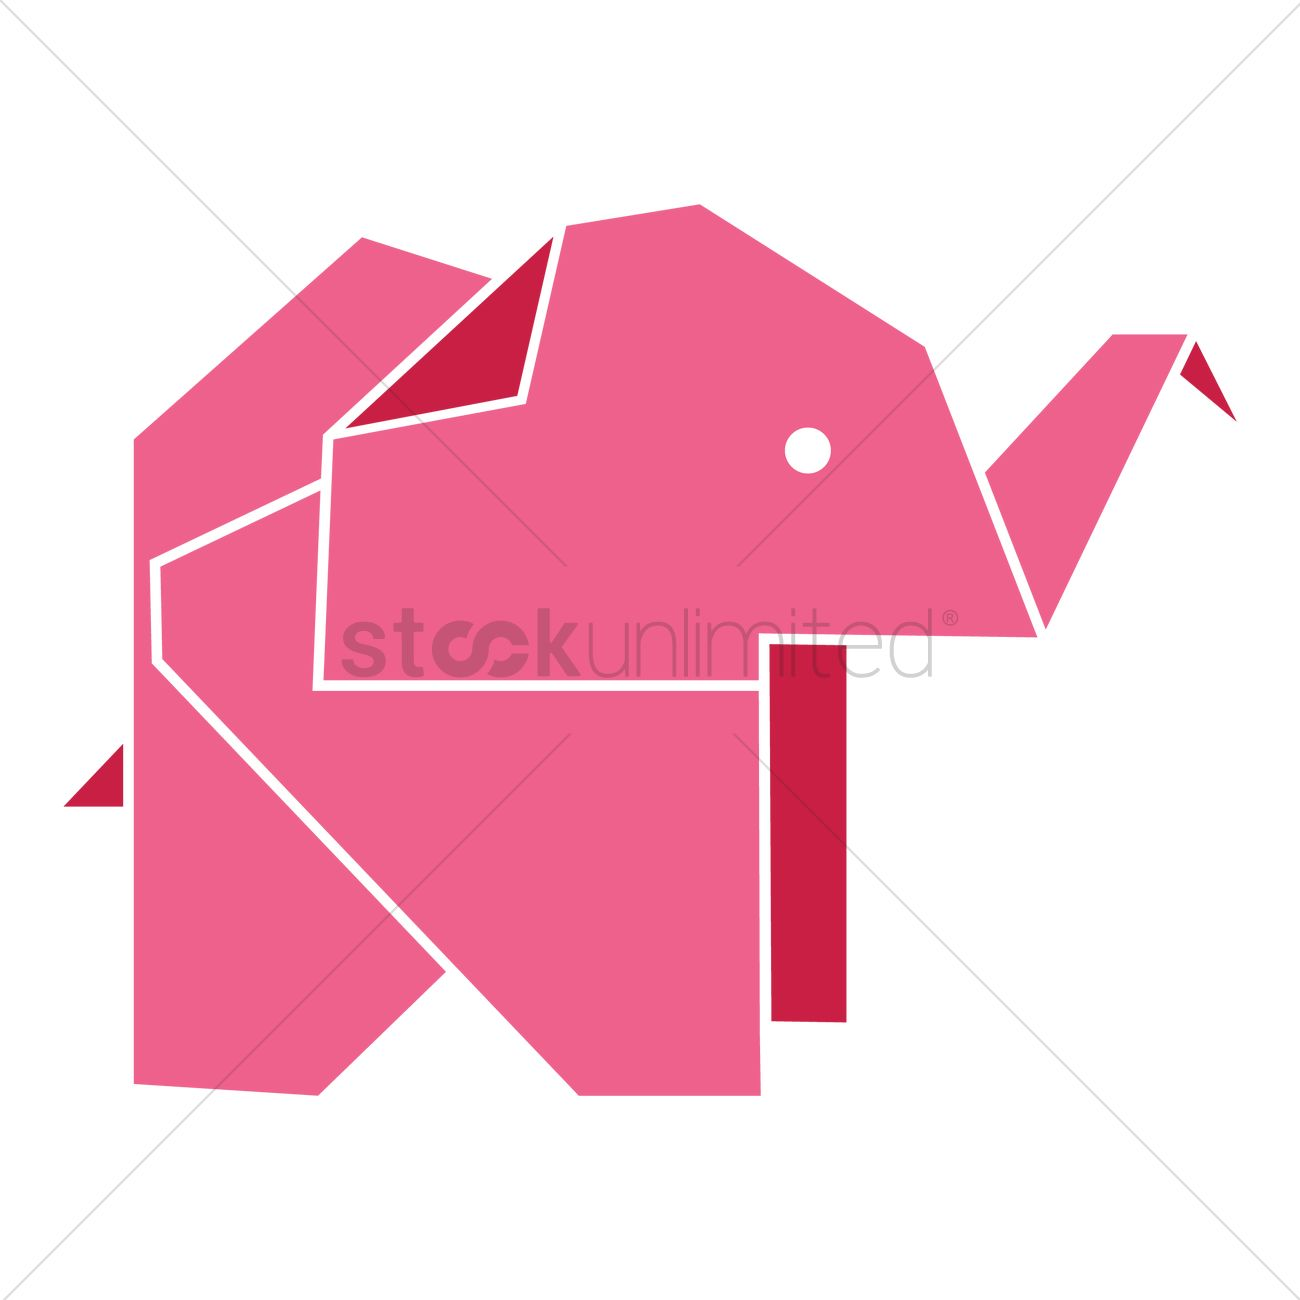 Free paper craft animals vector image 1335688 stockunlimited free paper craft animals vector graphic jeuxipadfo Image collections